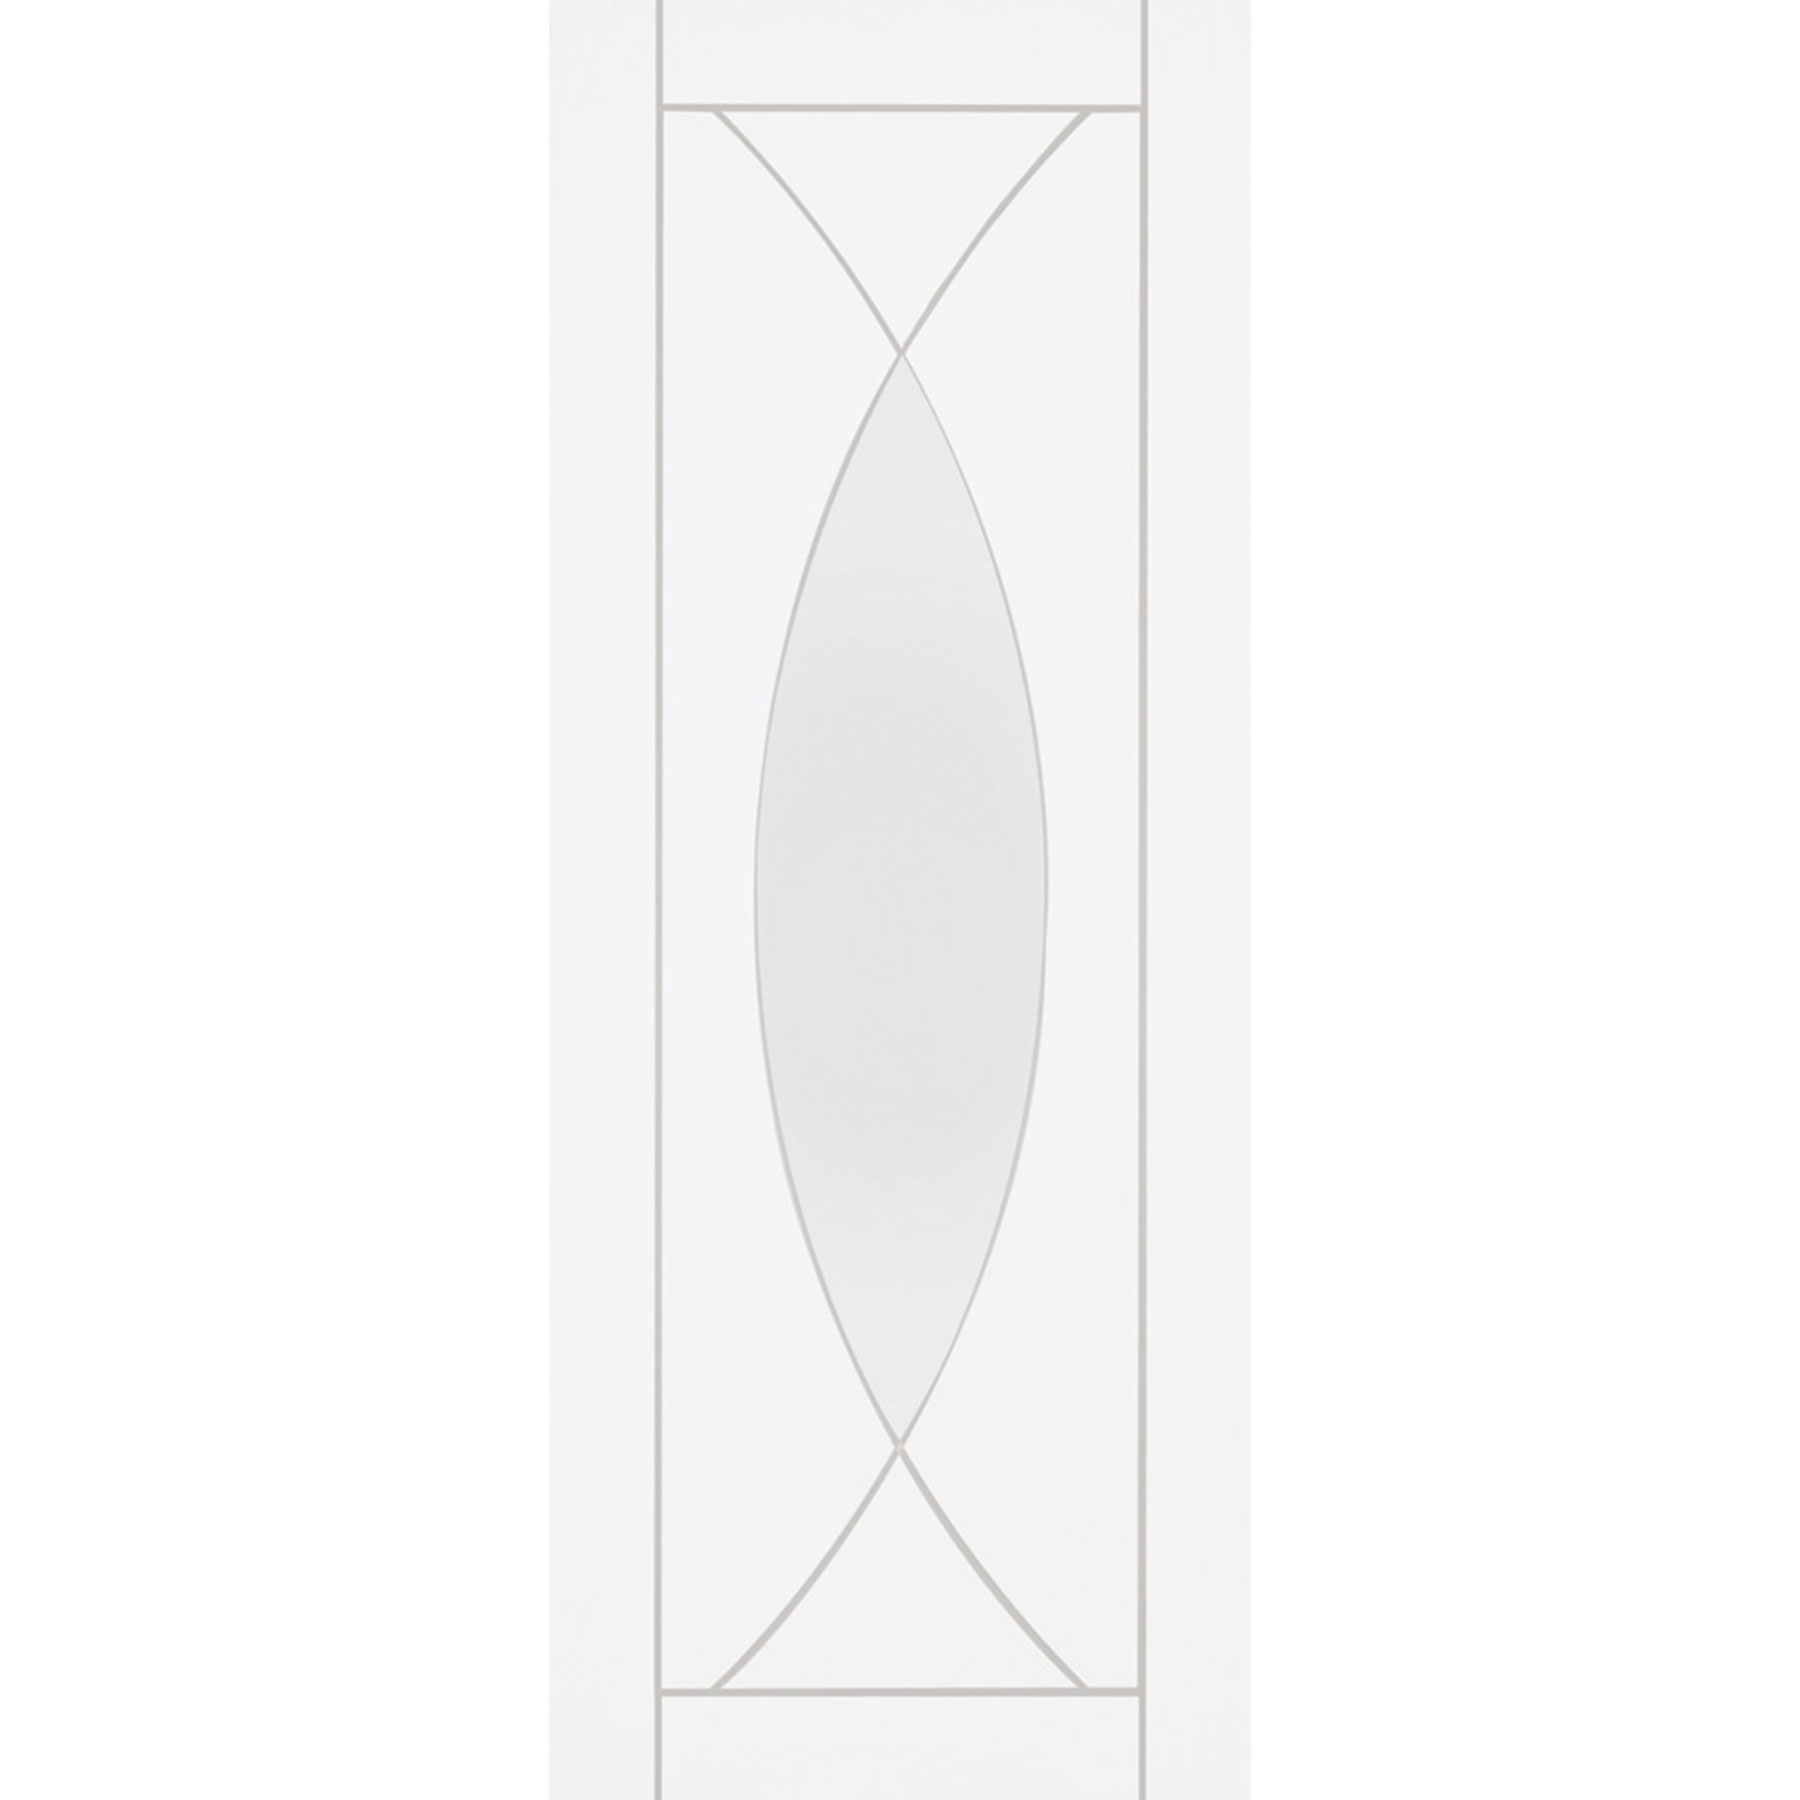 Glazed doors shawfield doors pesaro internal white door clear glass planetlyrics Gallery